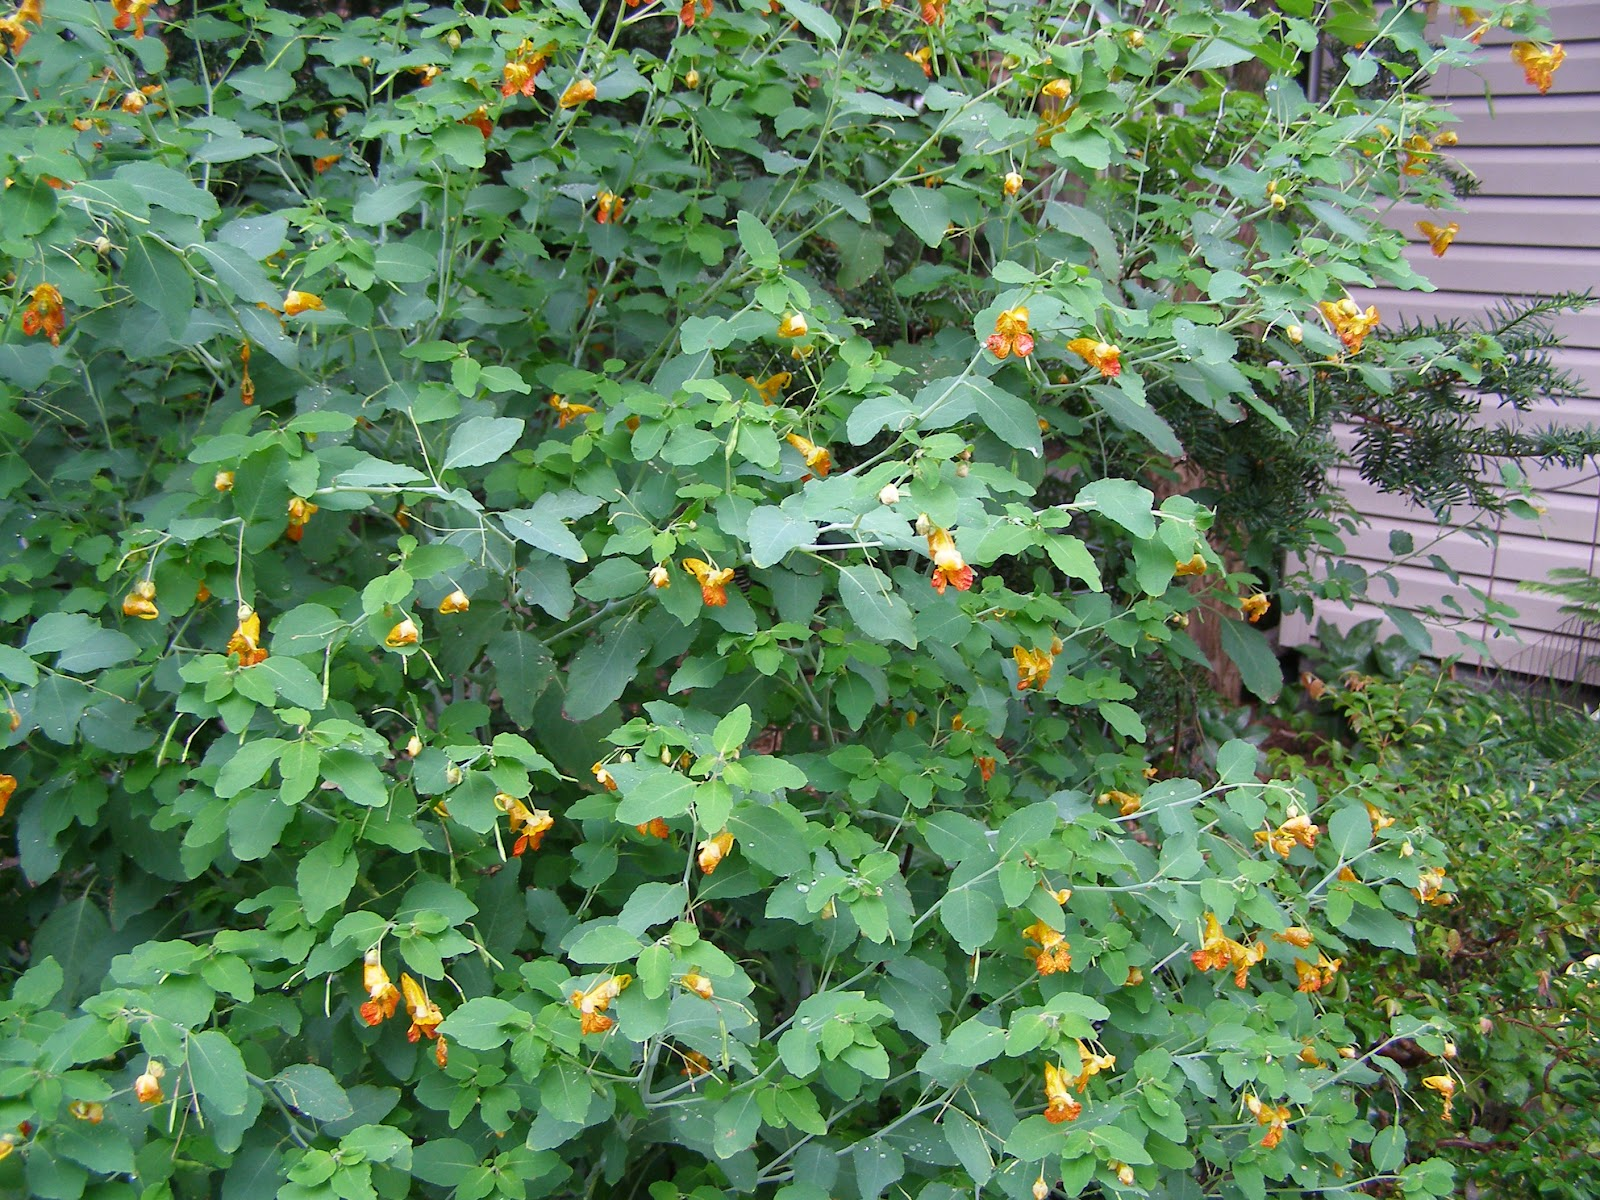 Weed Growing In My Backyard : allow several Jewel Weed plants to grow in my backyard each summer